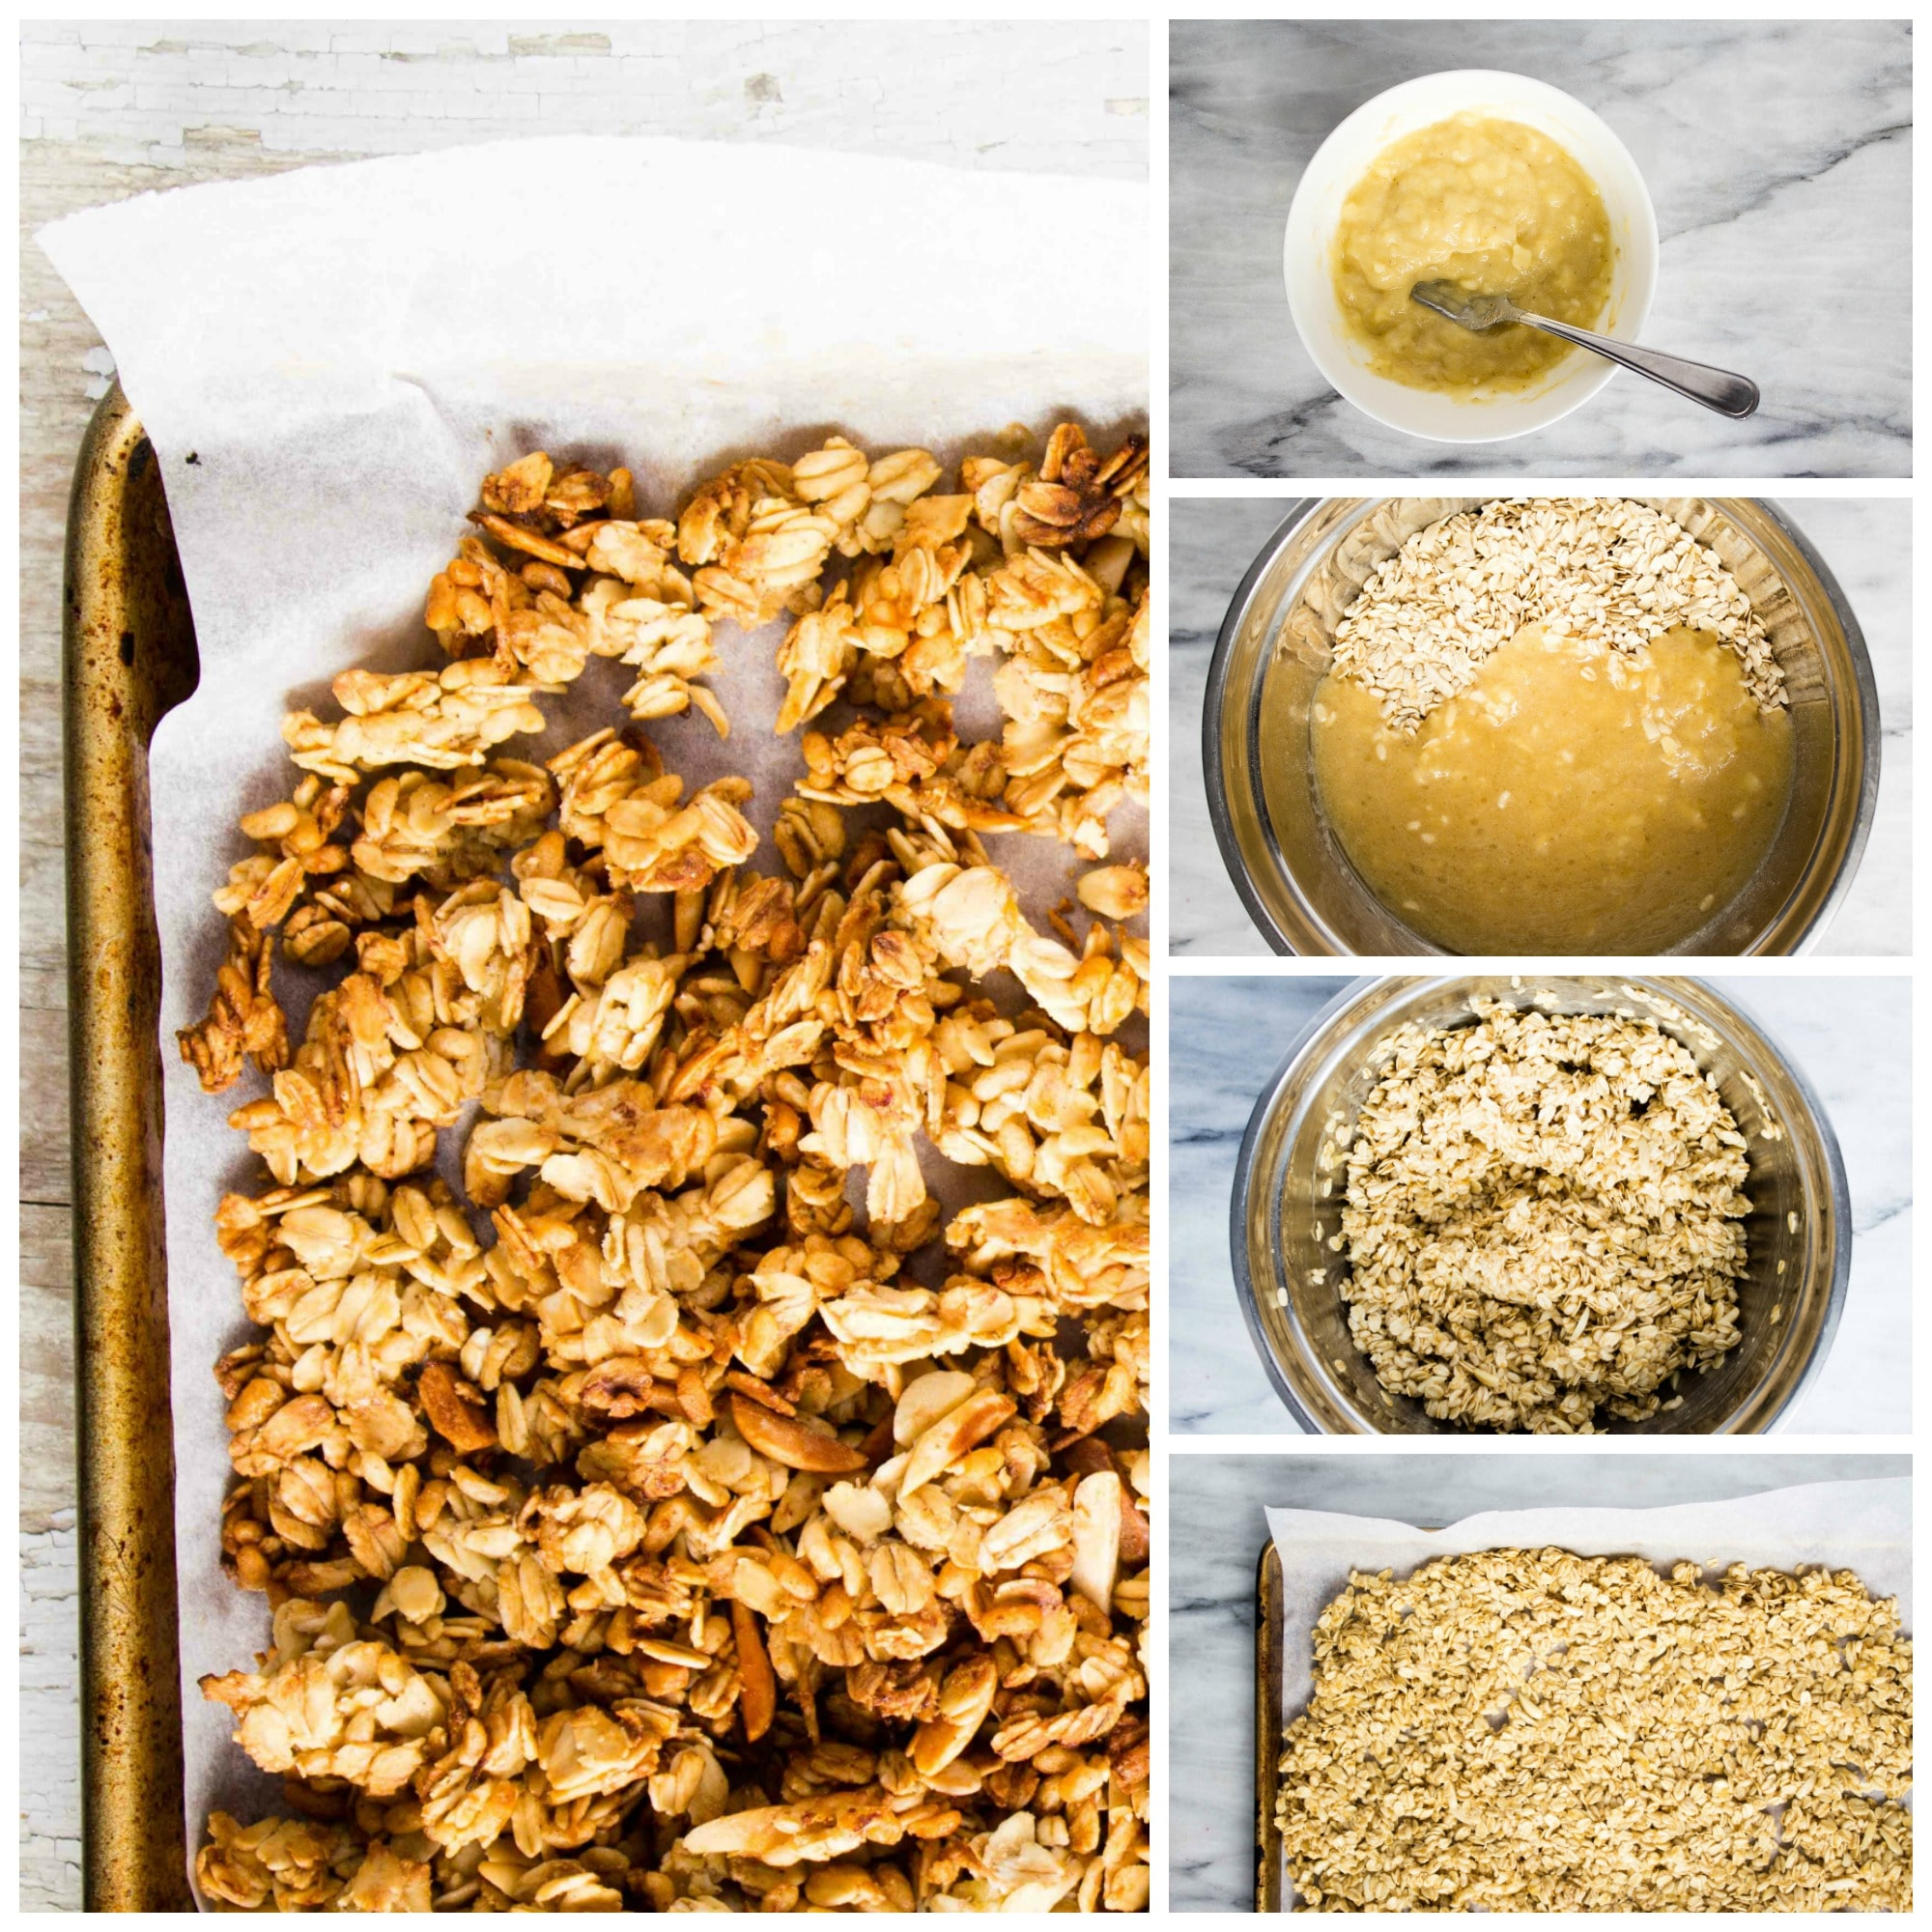 banana-bread-granola-ingredients